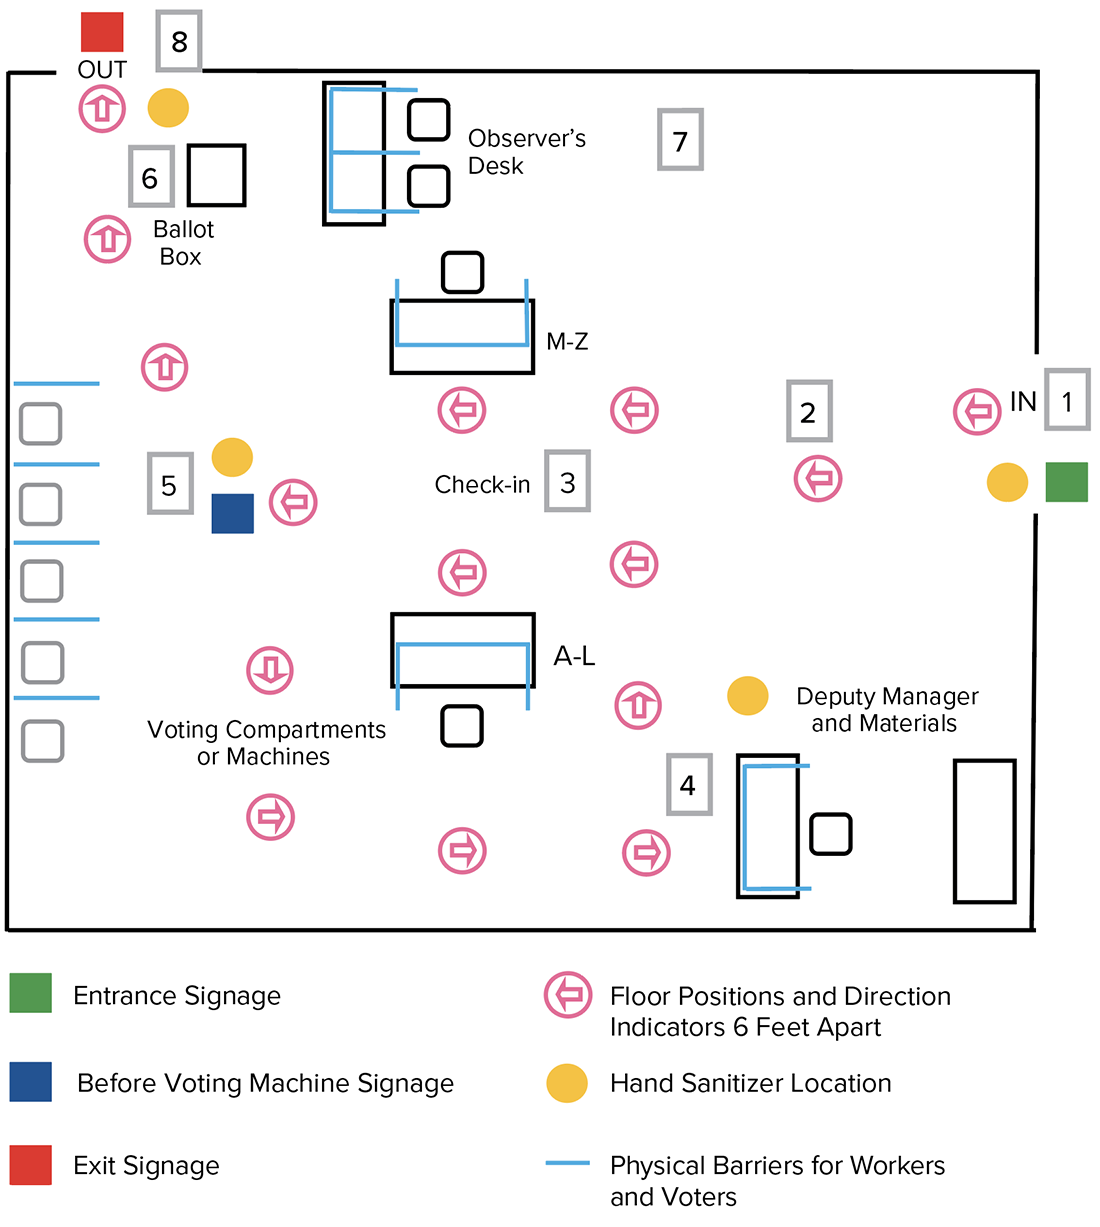 Acro Display Election Floor Plan